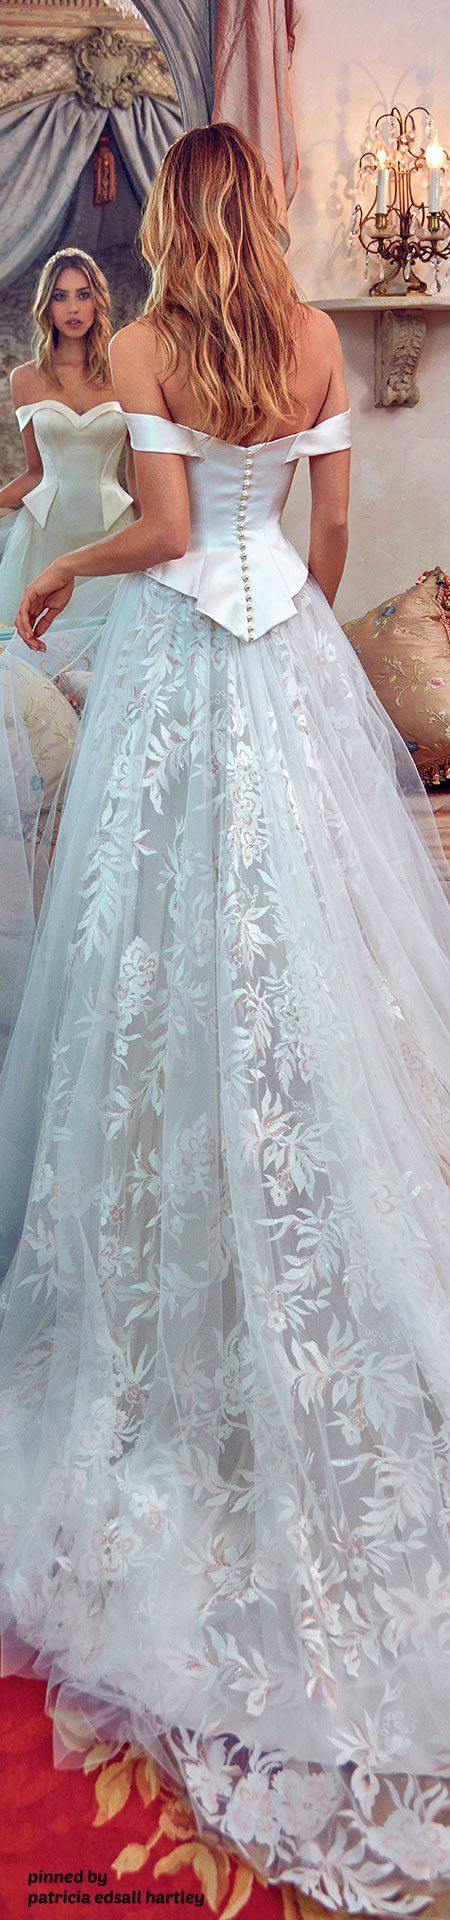 Contemporary Celtic Wedding Dress Patterns Inspiration - Wedding ...